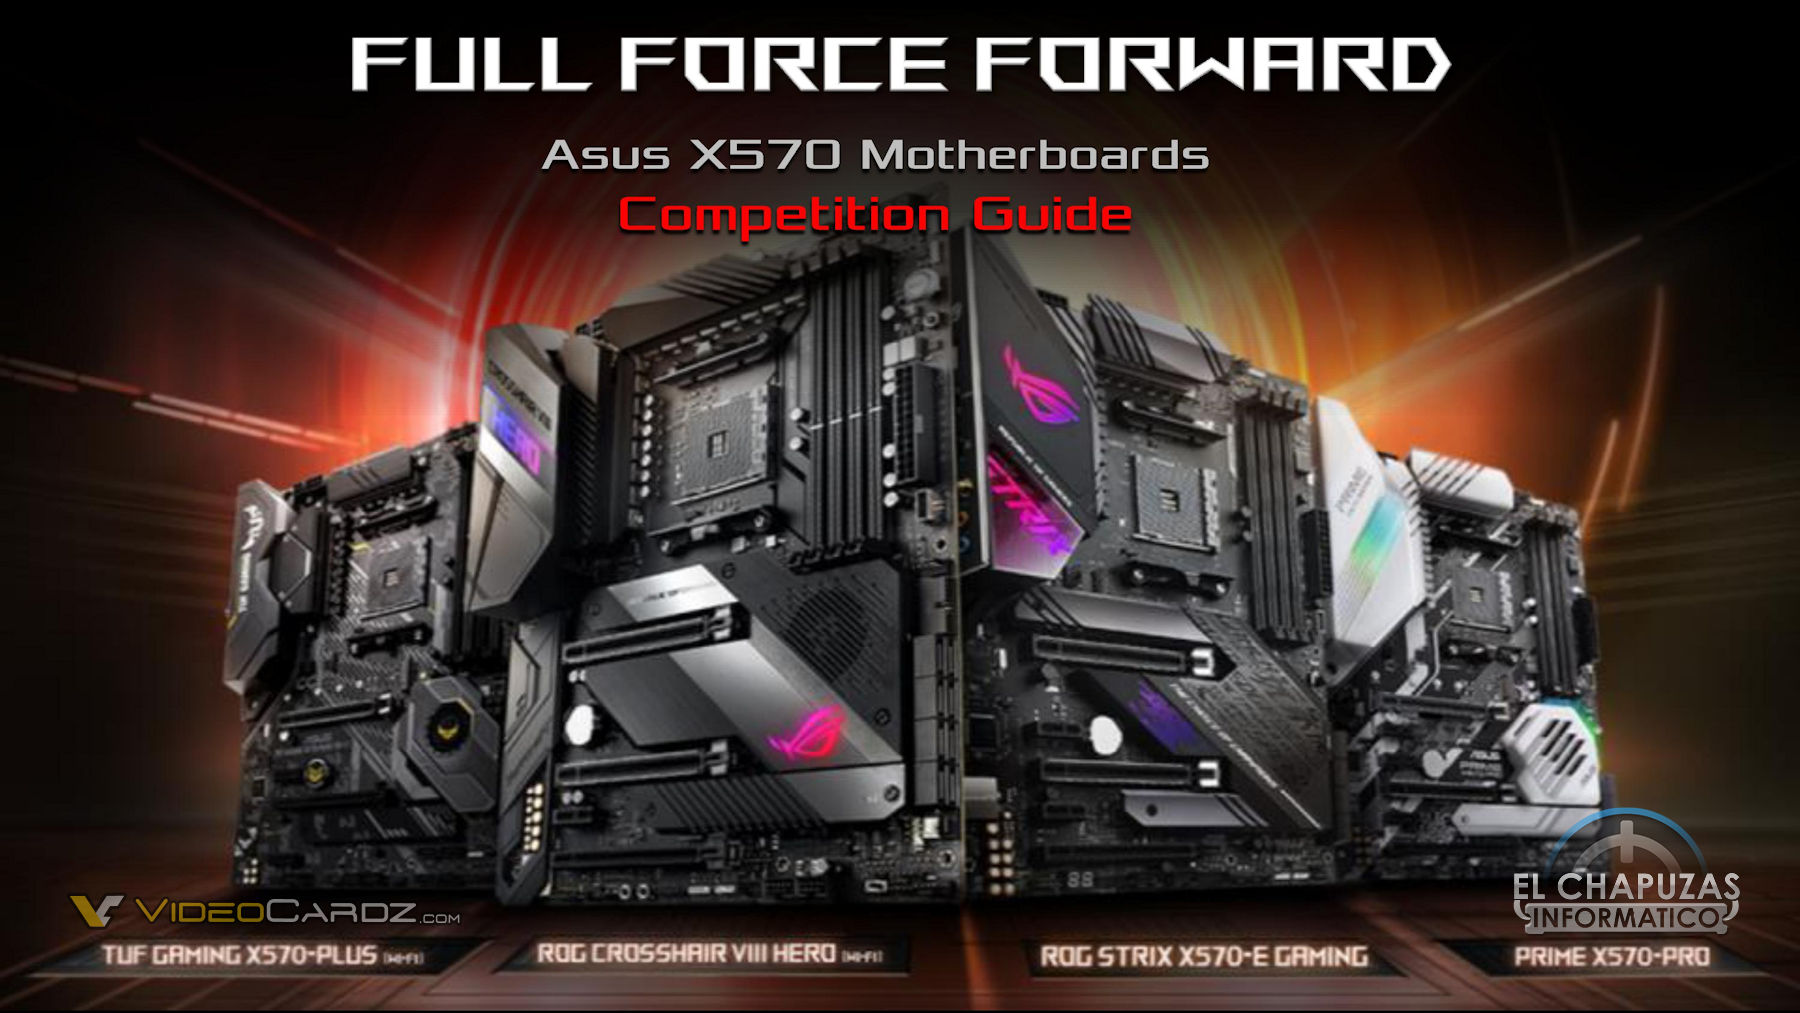 ASUS Thinks Their X570 Motherboards Are Better Than MSI & GIgabyte